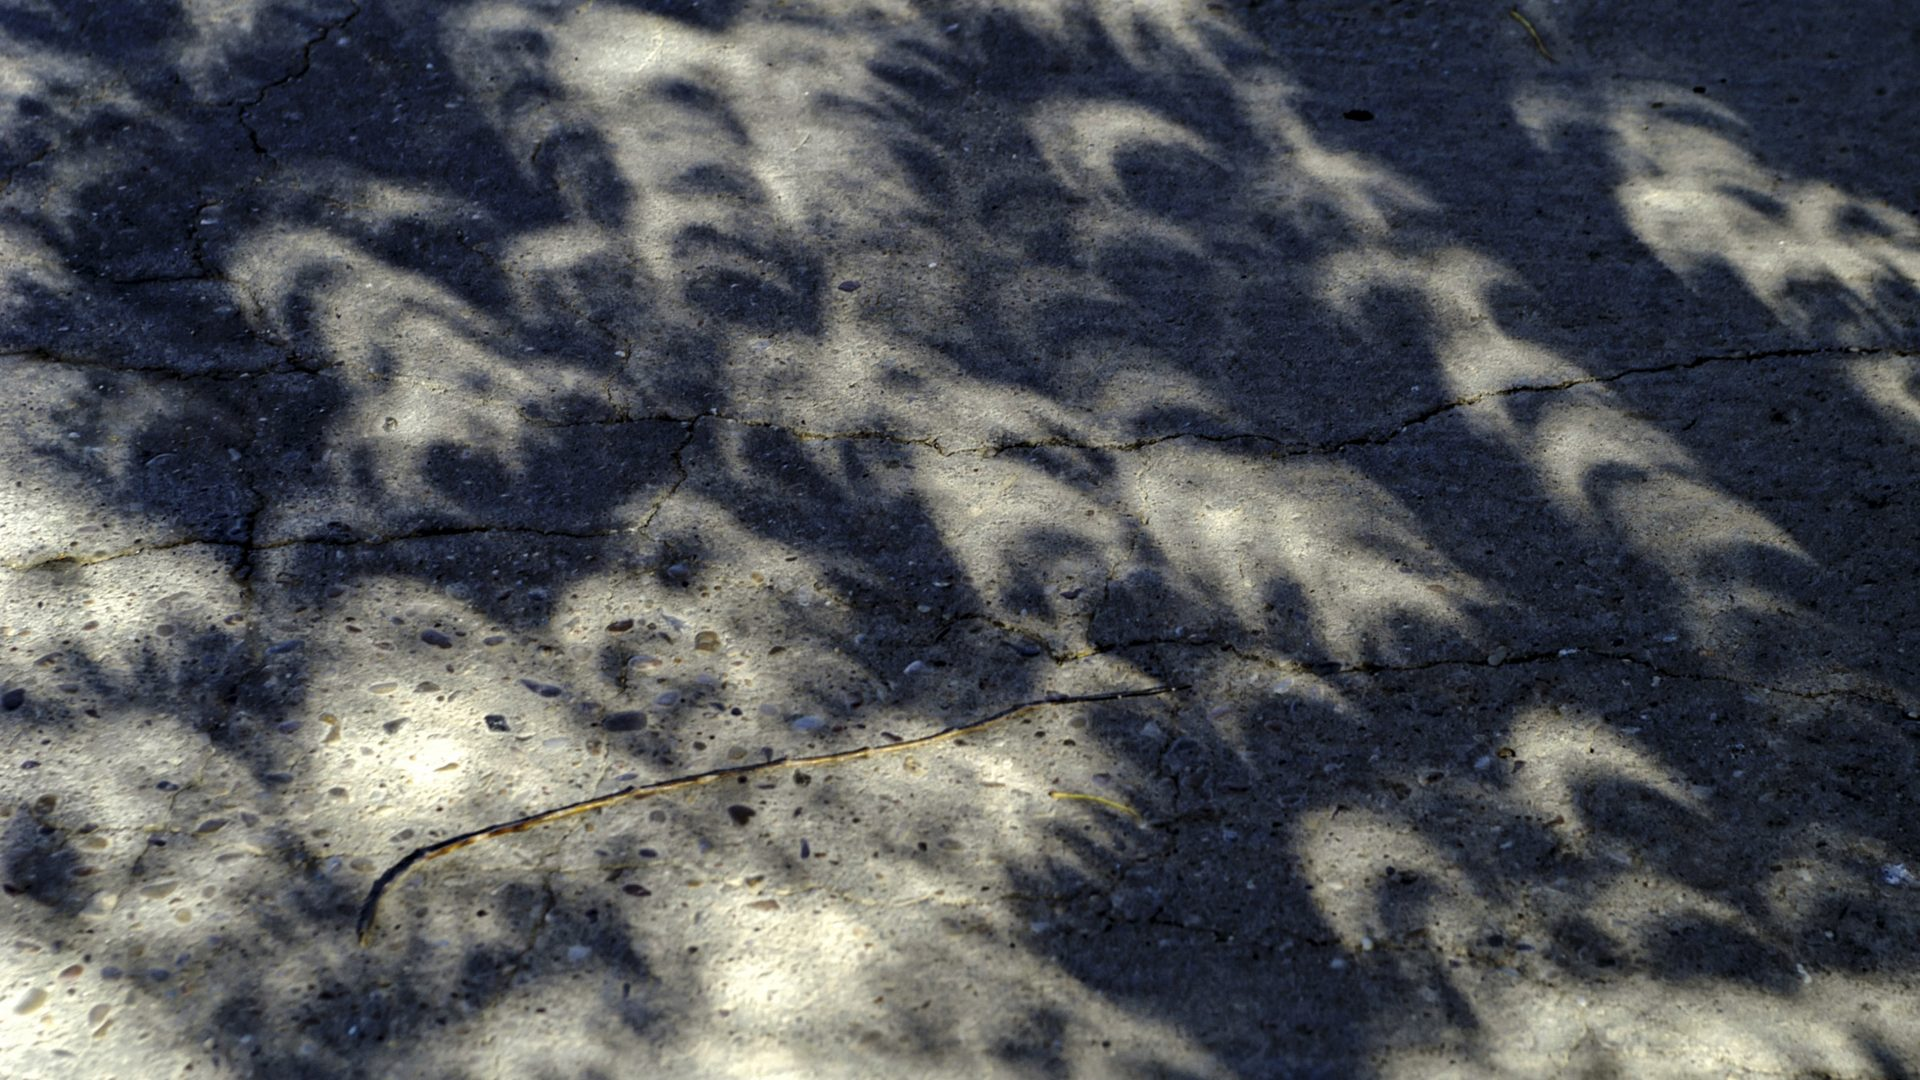 Images of the eclipsed crescent sun appear in a tree shadow.